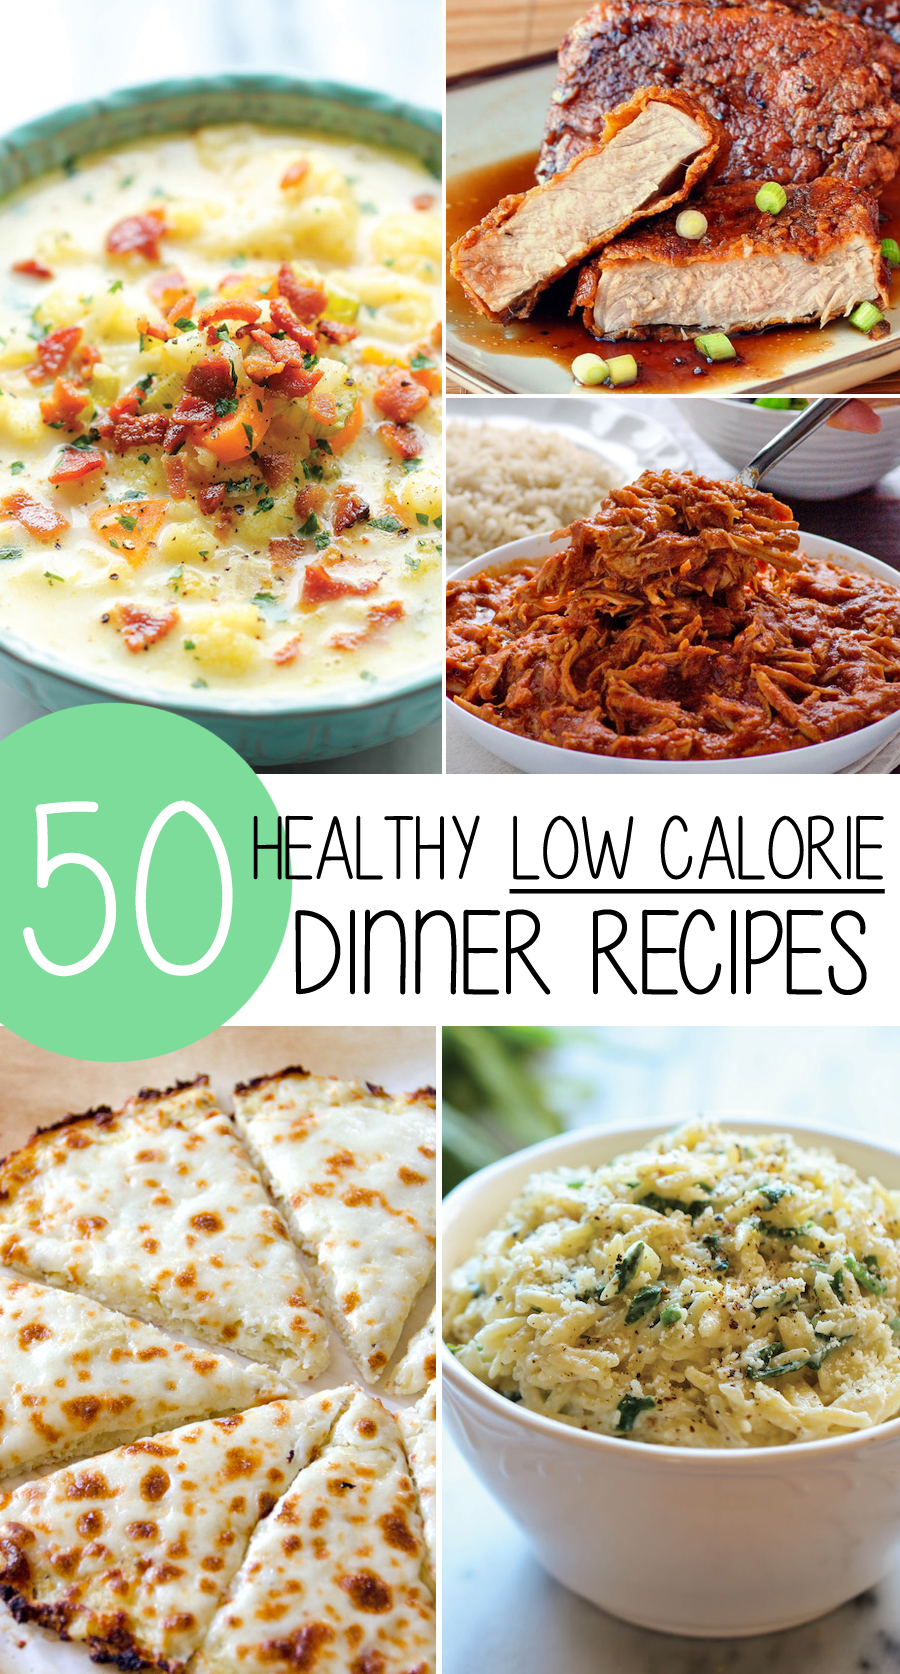 calorie healthy dinner low recipes weight loss meals food lose foods calories fast delicious easy lunch cal meal diet simple